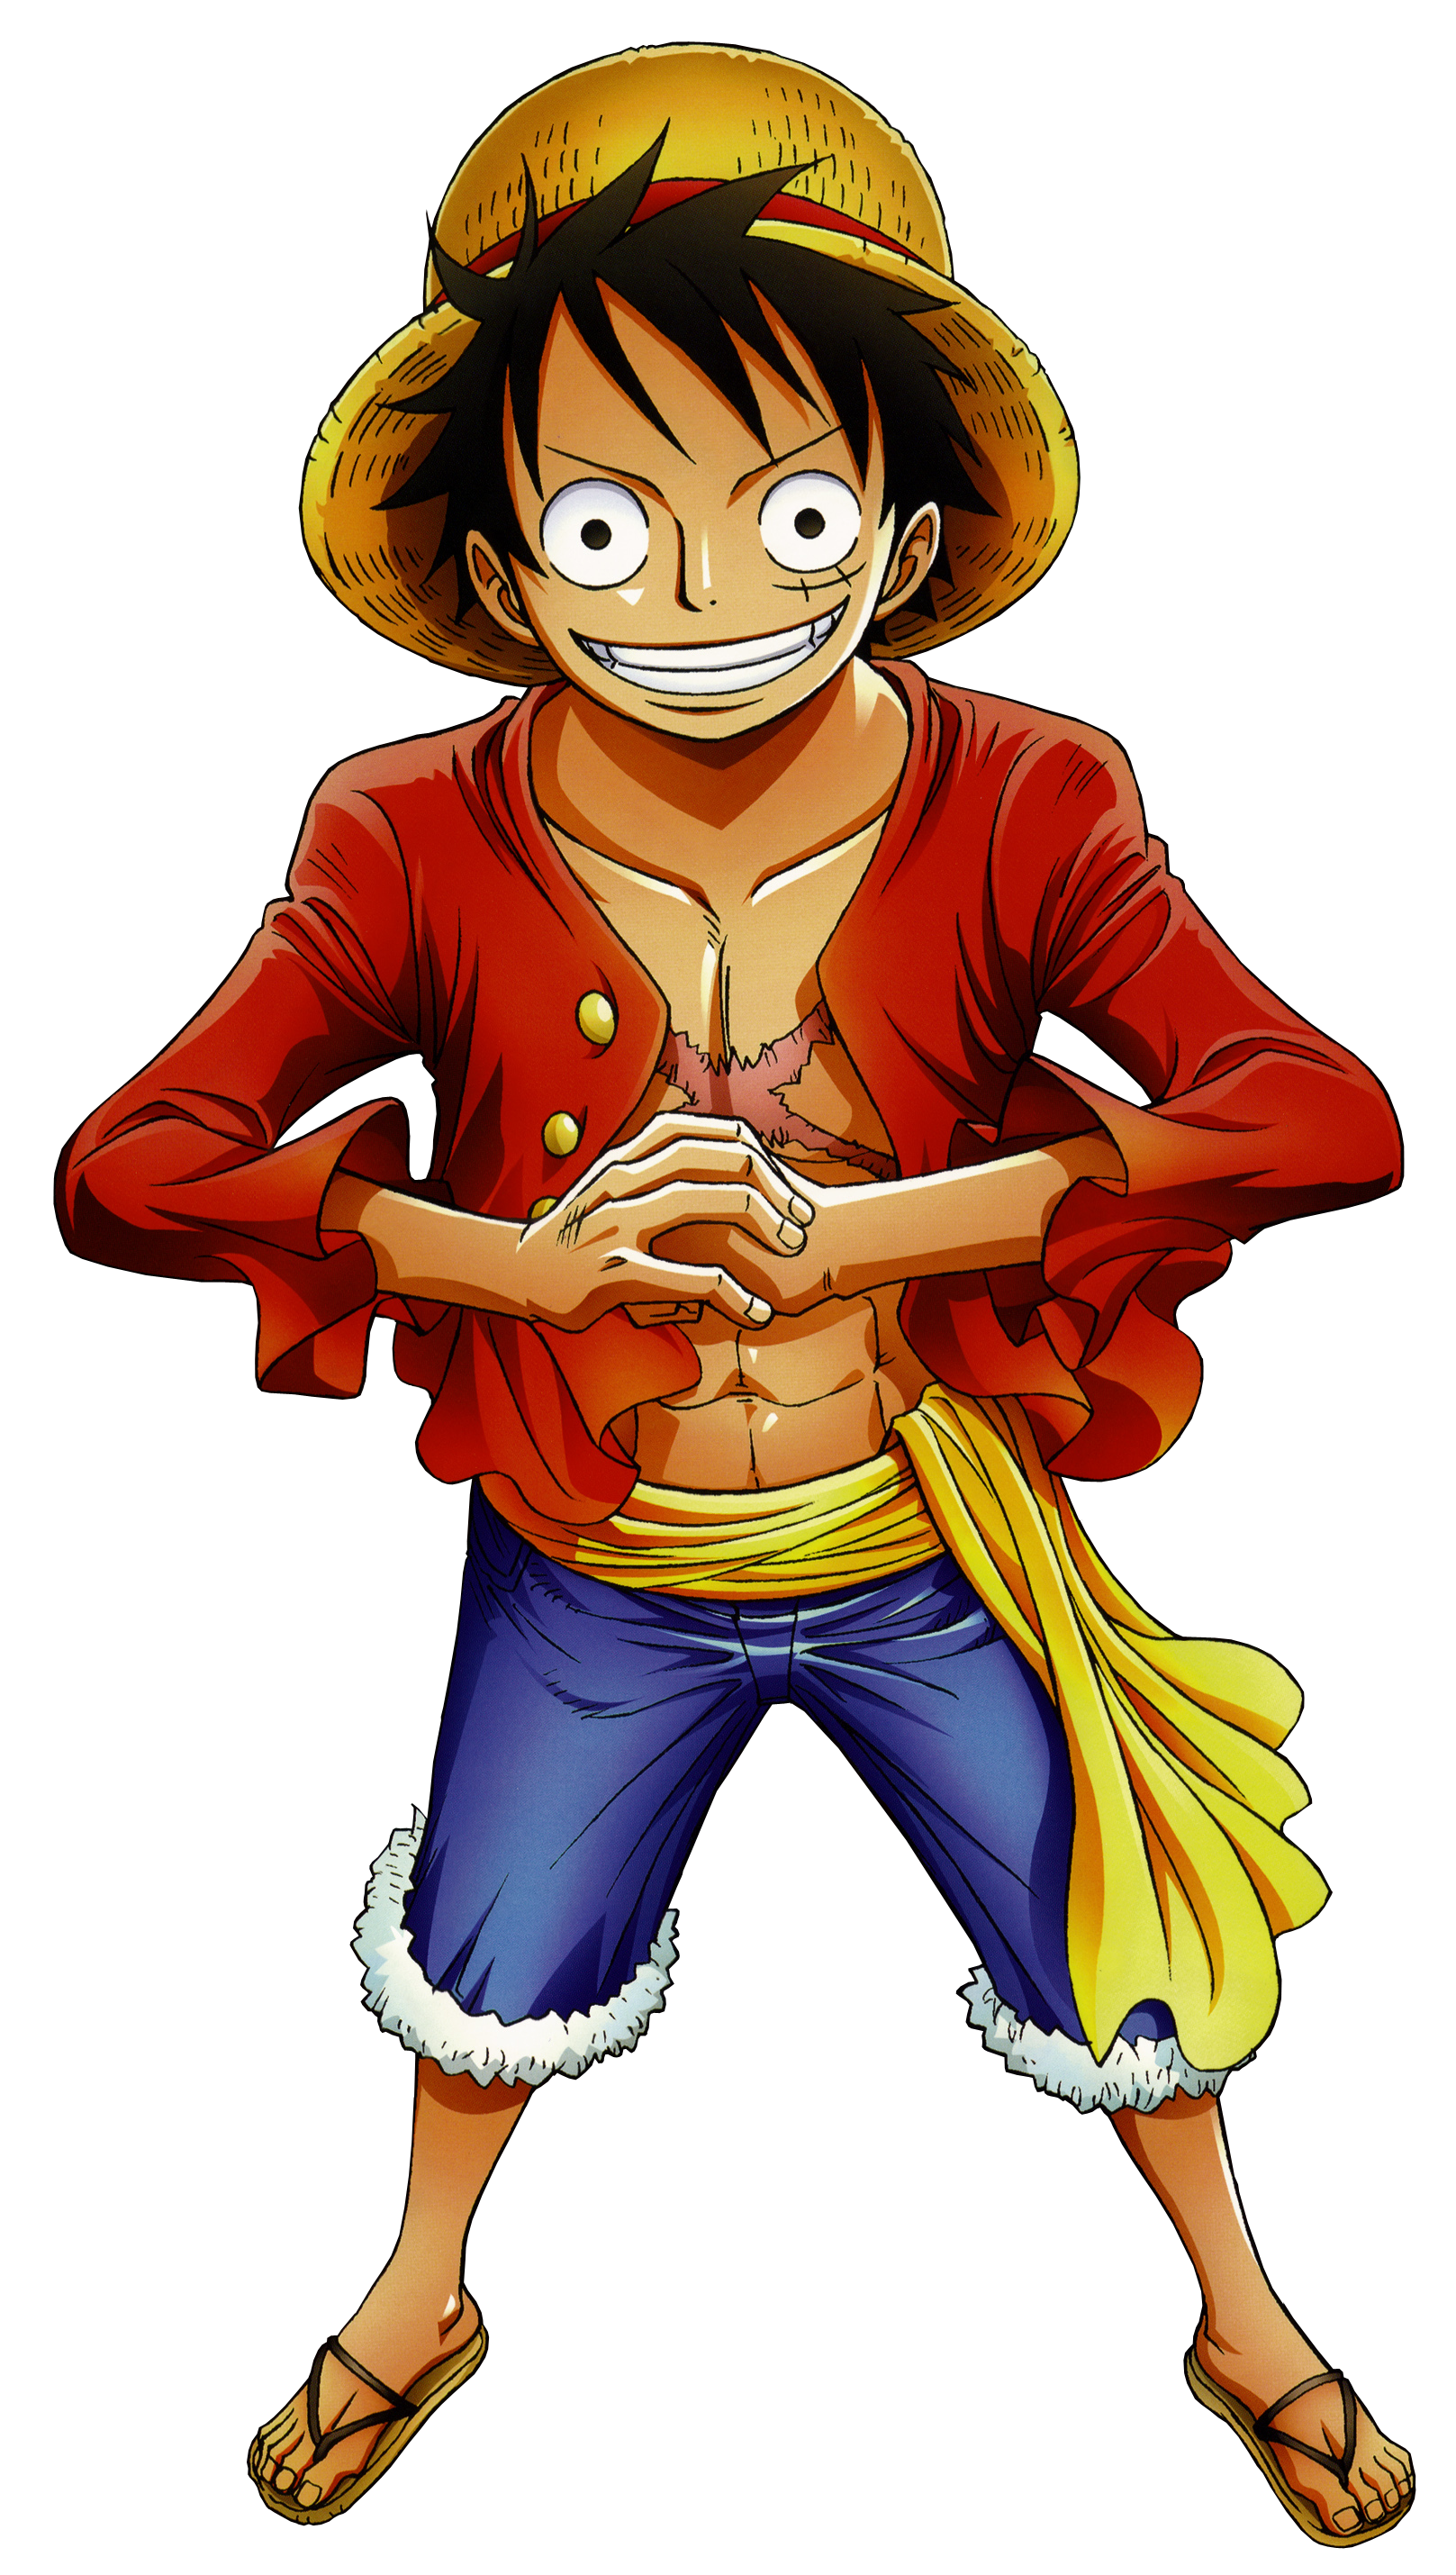 Monkey d luffy fictional. Conflict clipart protagonist